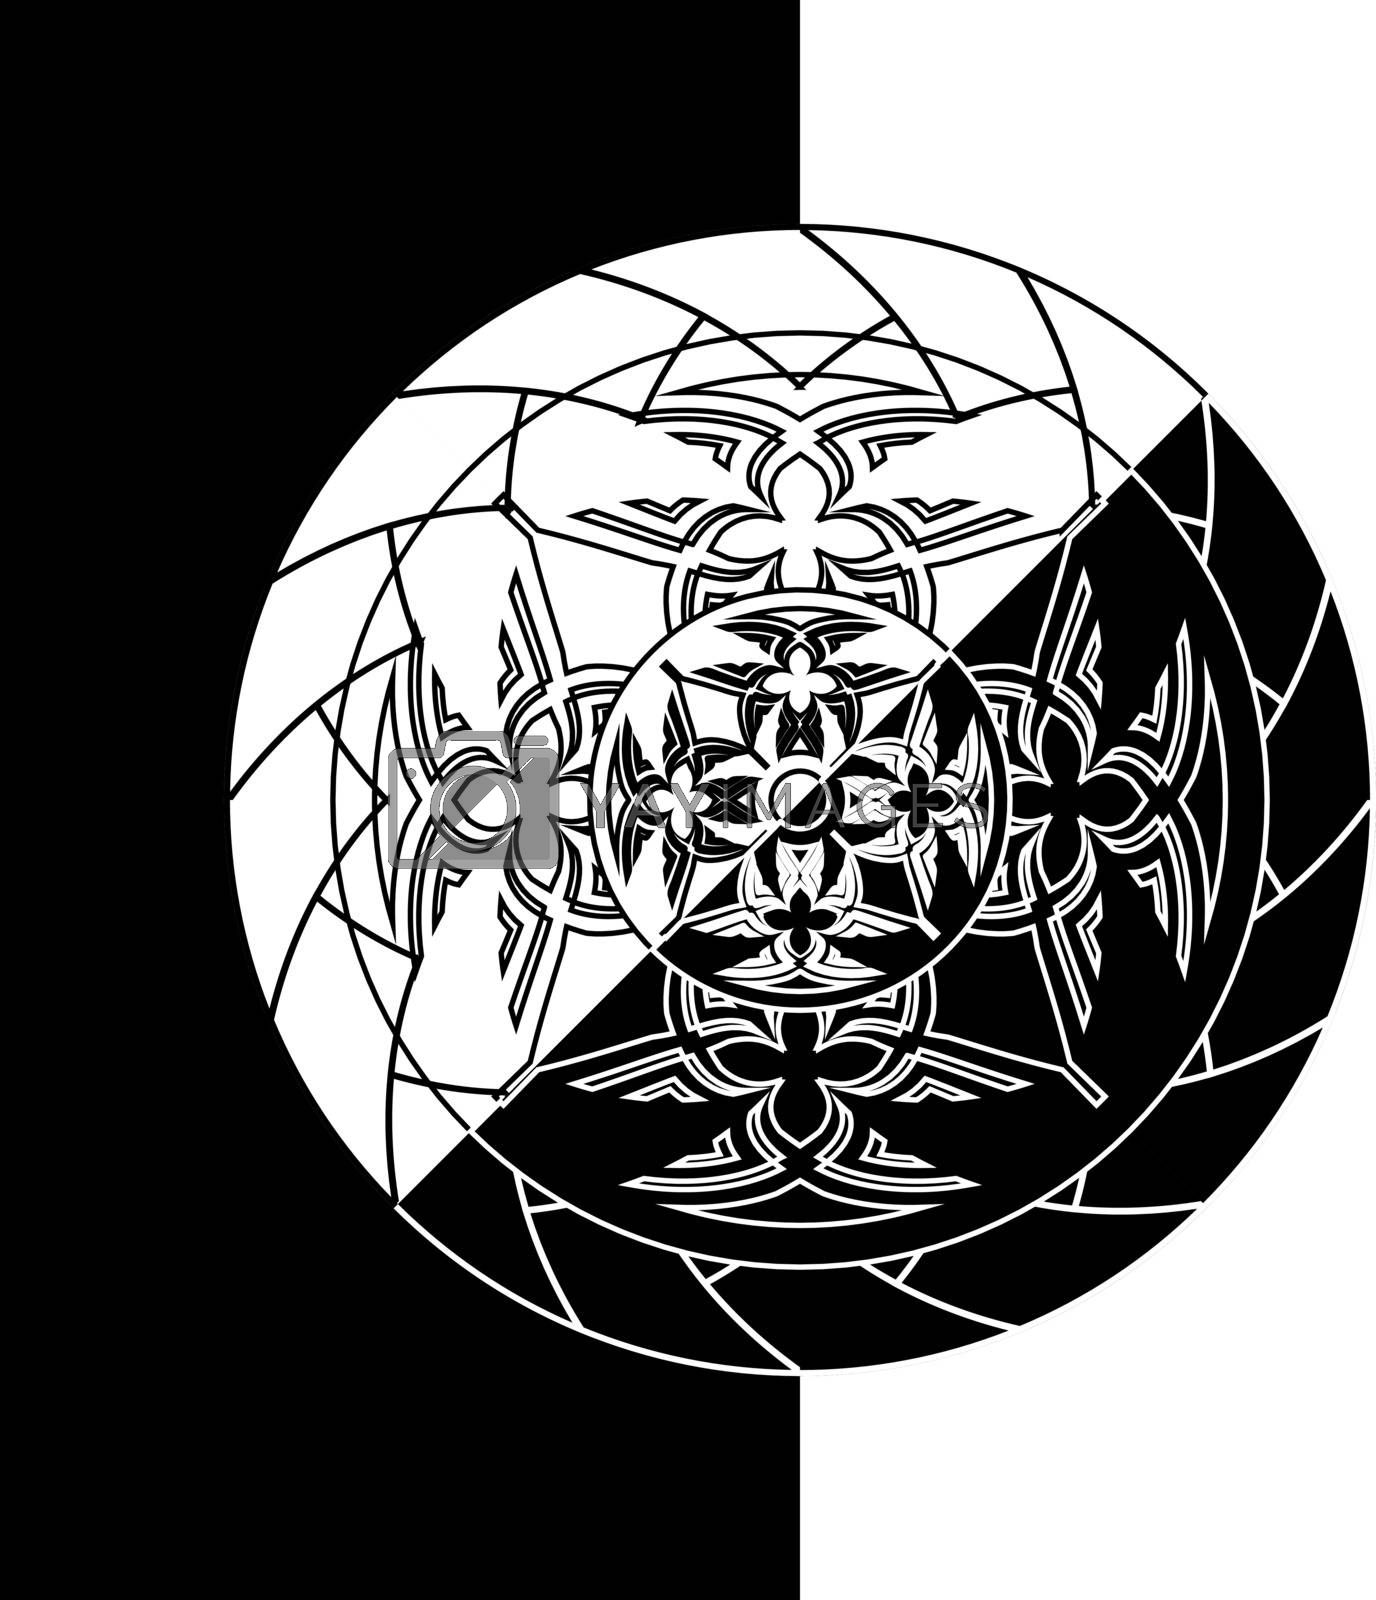 black and white inverse abstract monochrome circle in tribal style